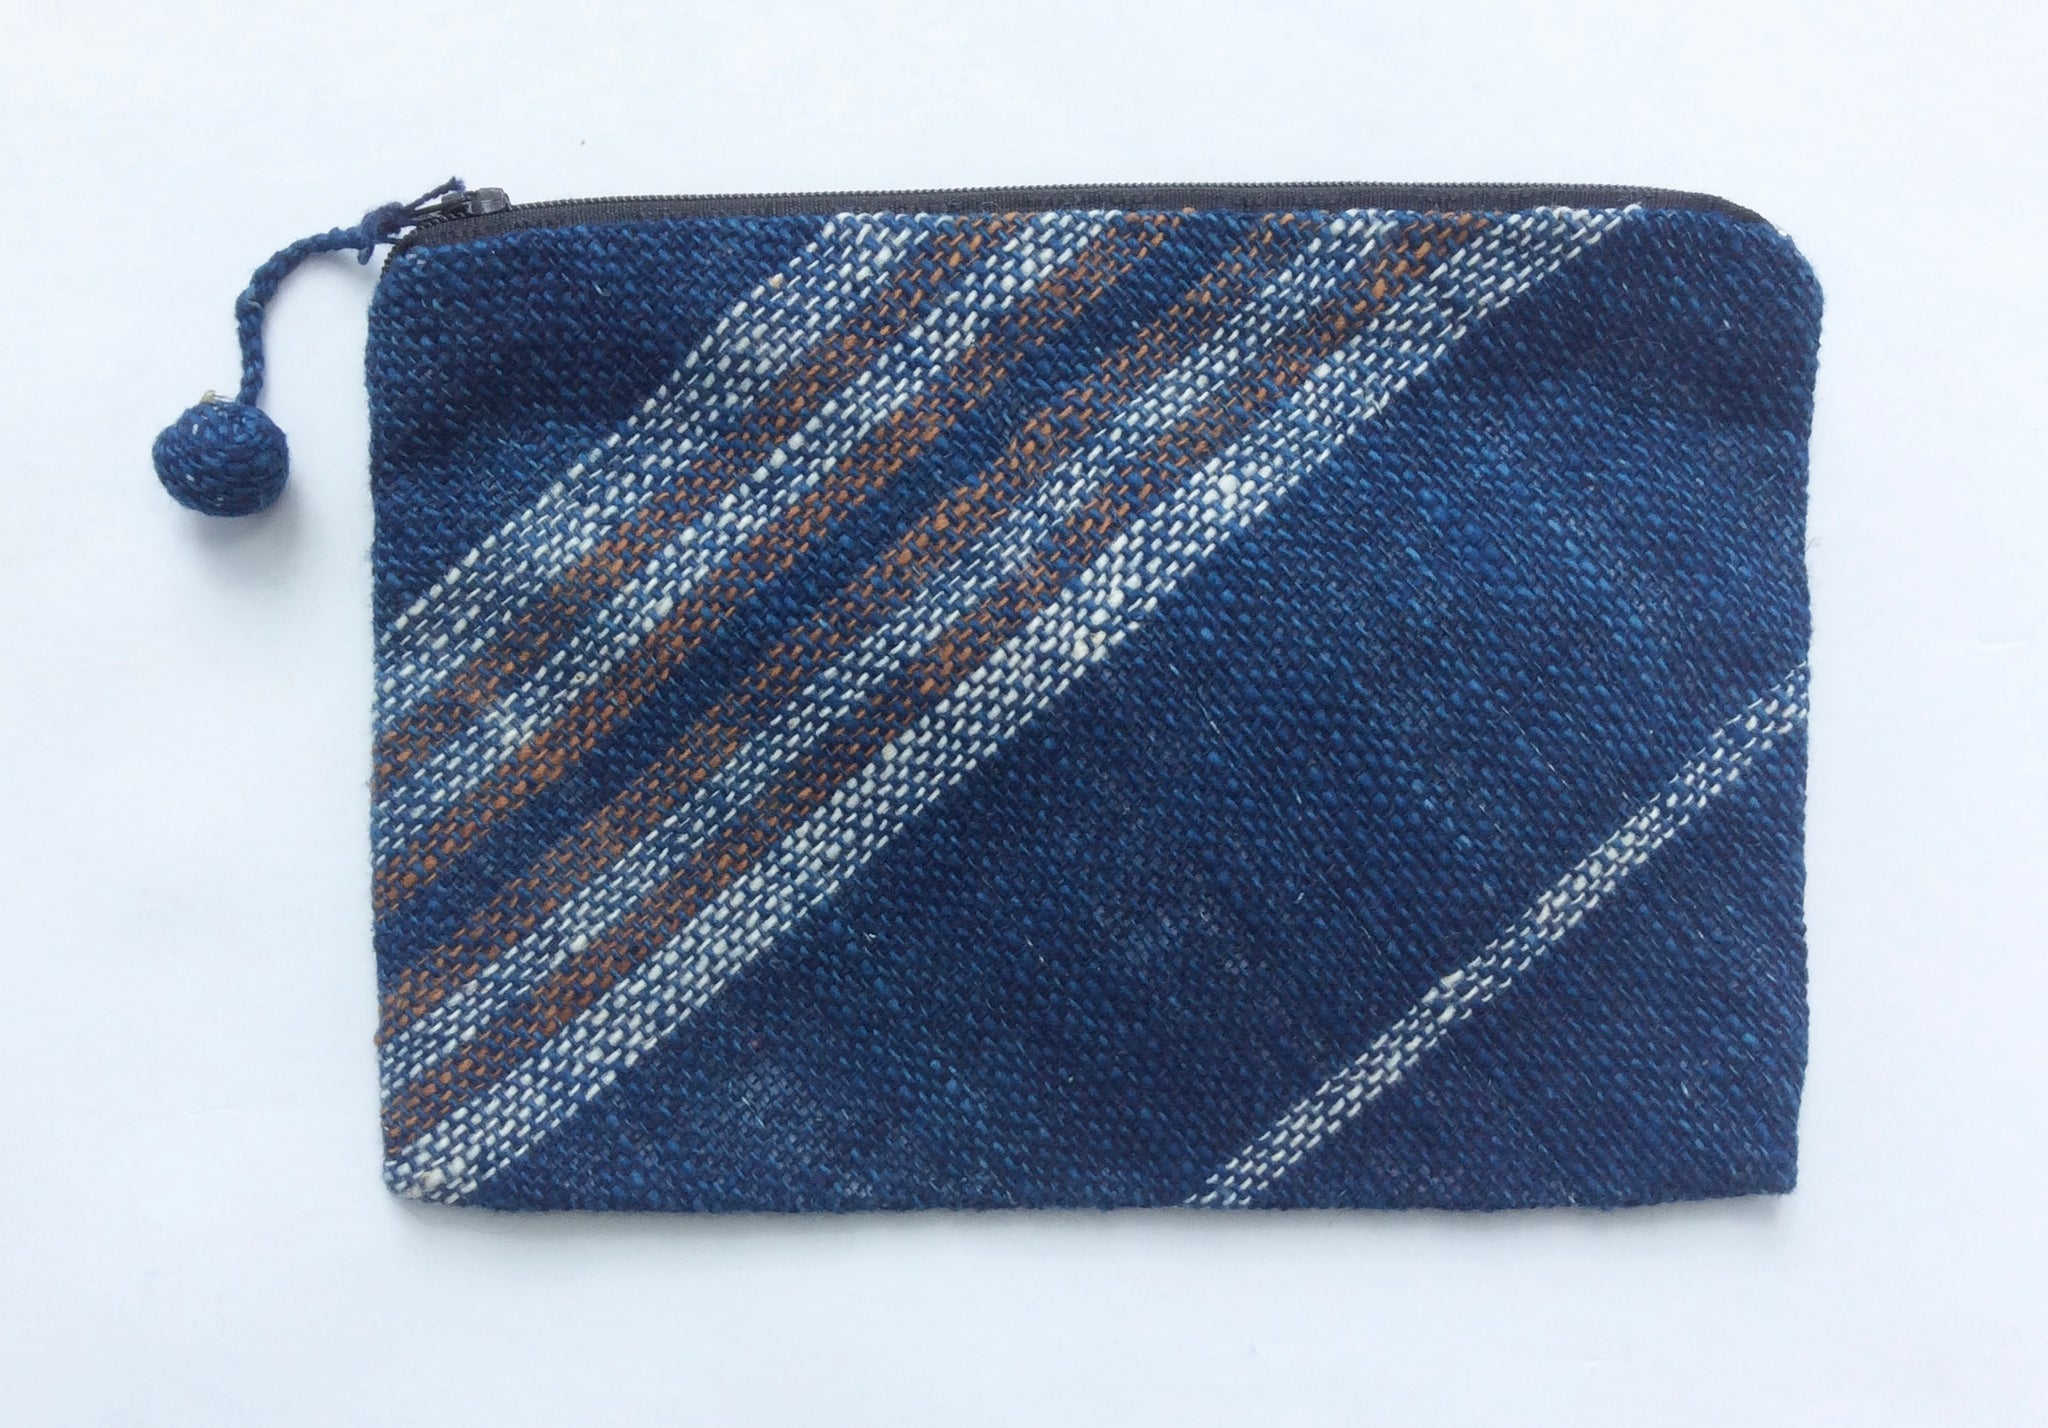 Indigo and Toffee Striped Pouch